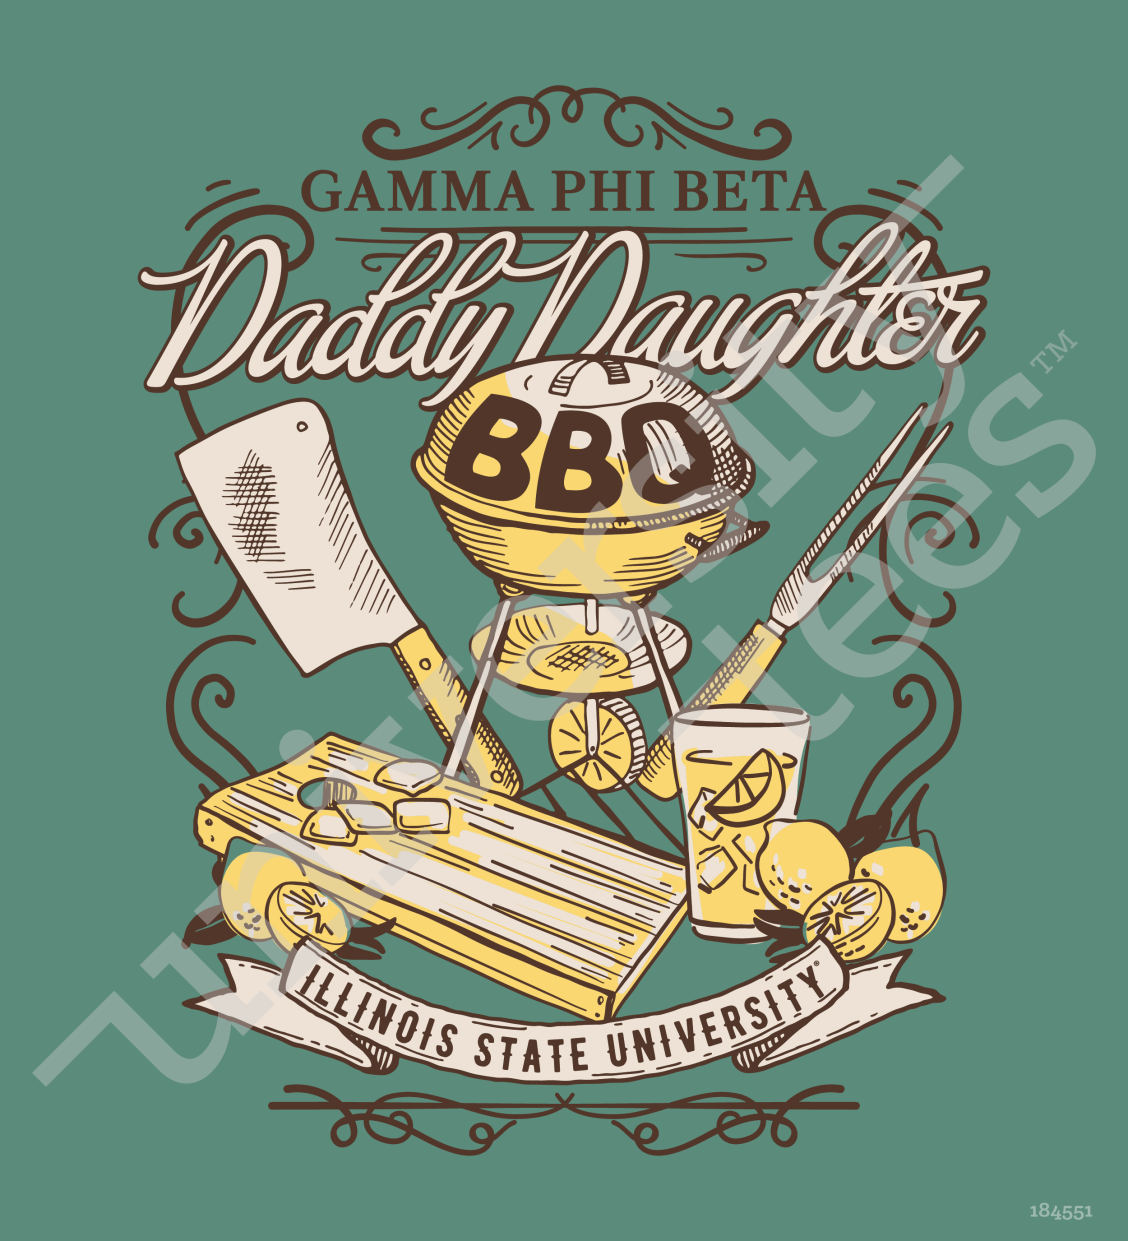 Bbq Gamma Gamma Phi Beta Daddy Daughter Bbq Design I Made By University Tees